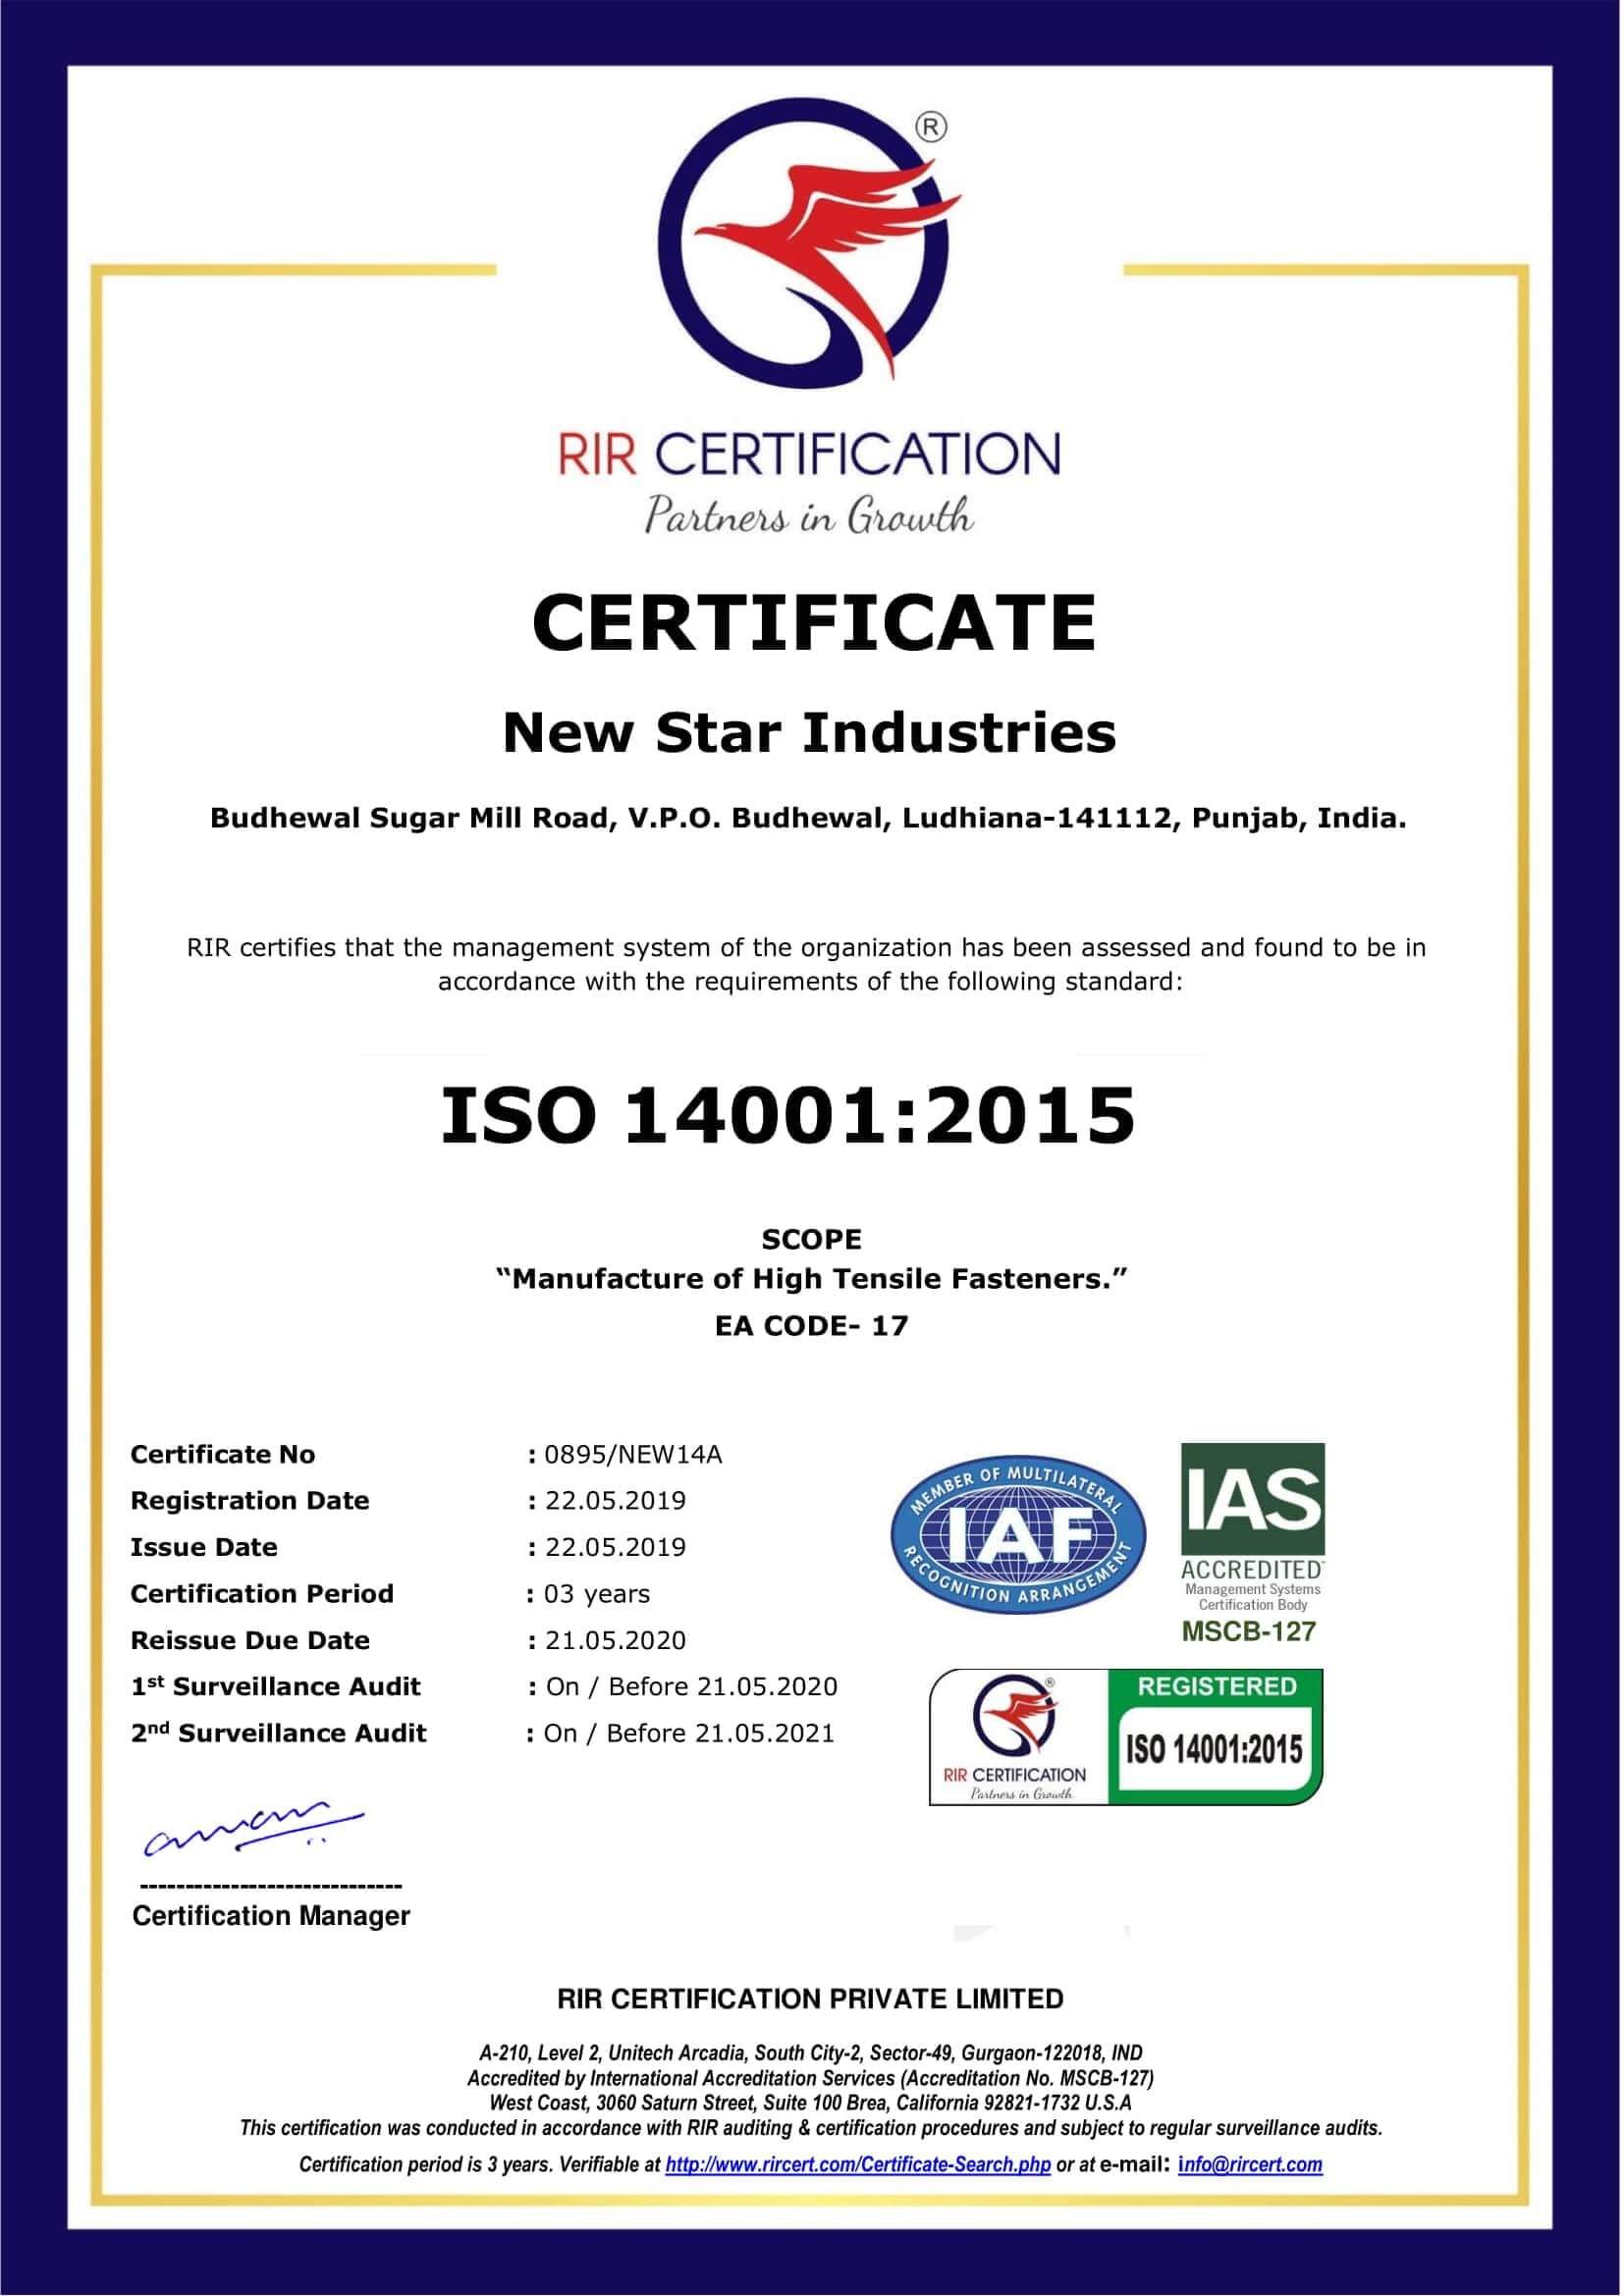 ISO 14001:2015 Certification.